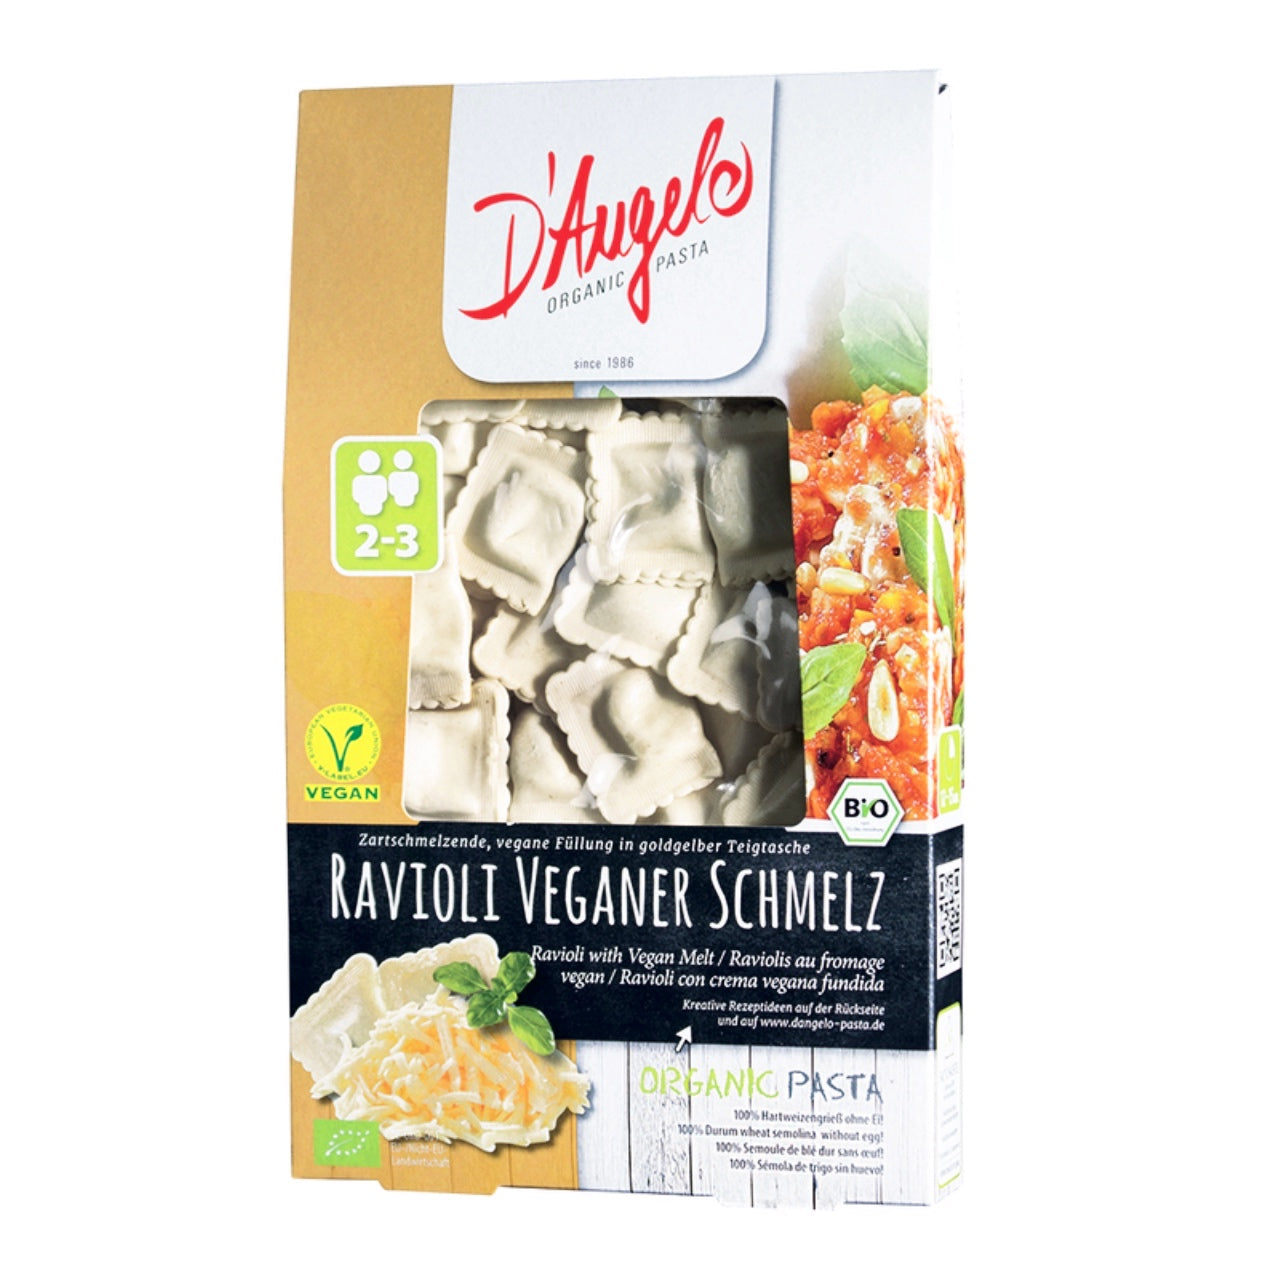 D'Angelo Vegan Melt Cheese Ravioli